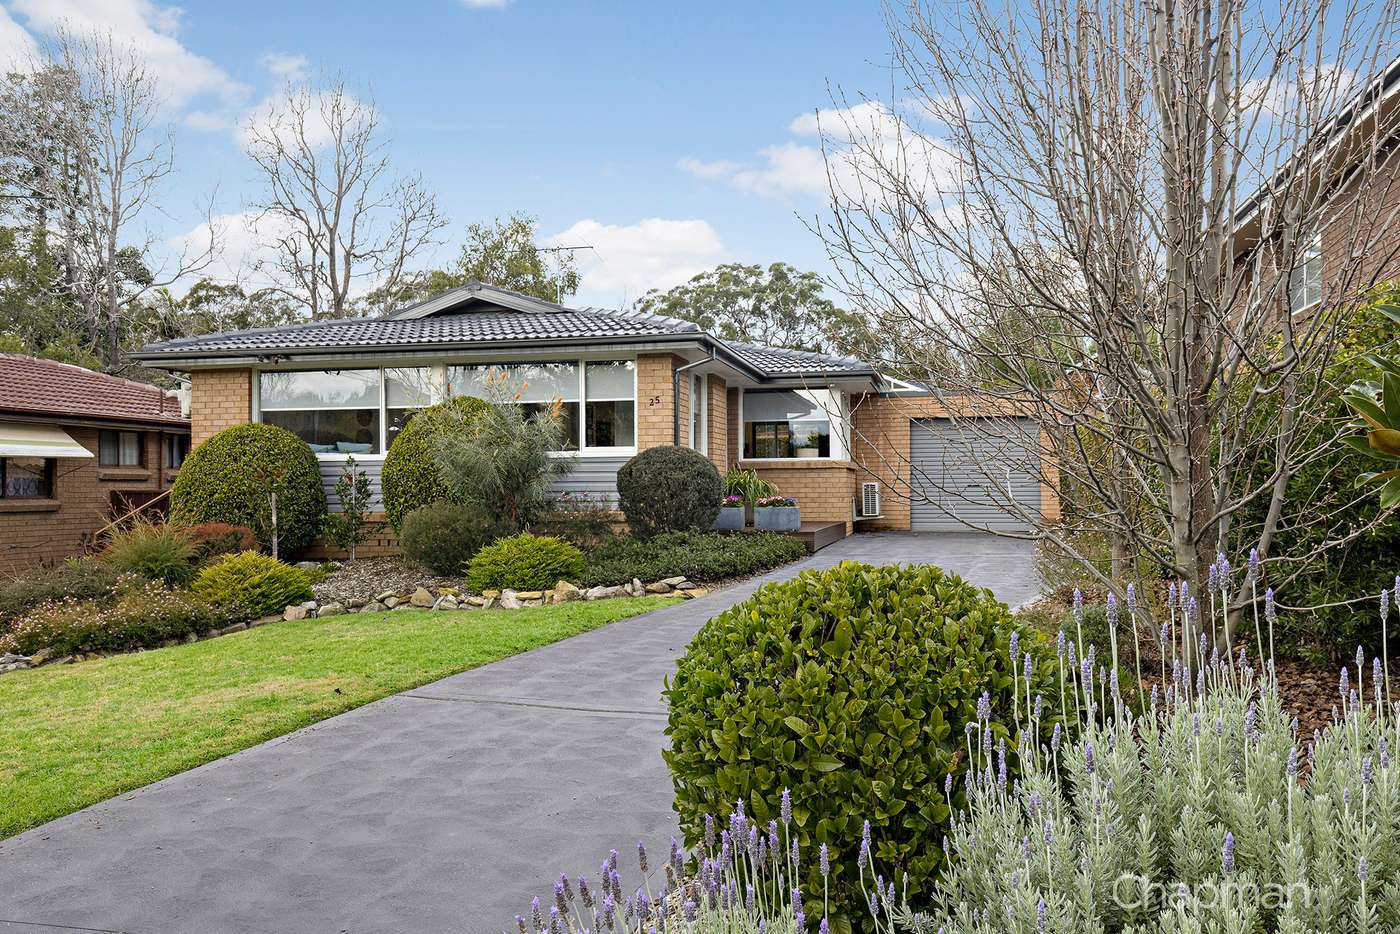 Main view of Homely house listing, 25 Cathy Street, Blaxland NSW 2774